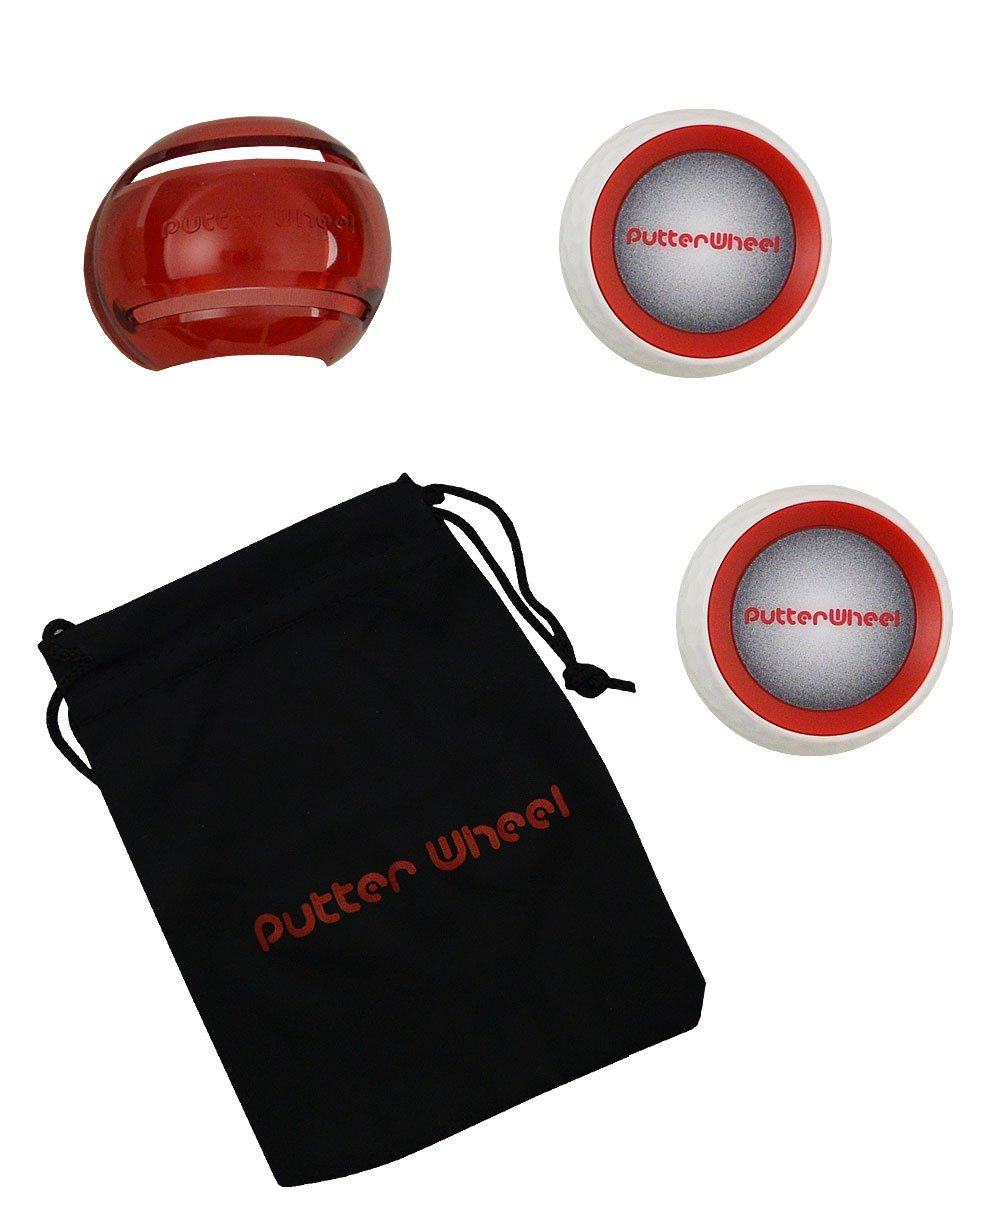 Putter Wheel Golf Putting Training Aids 2 Pack